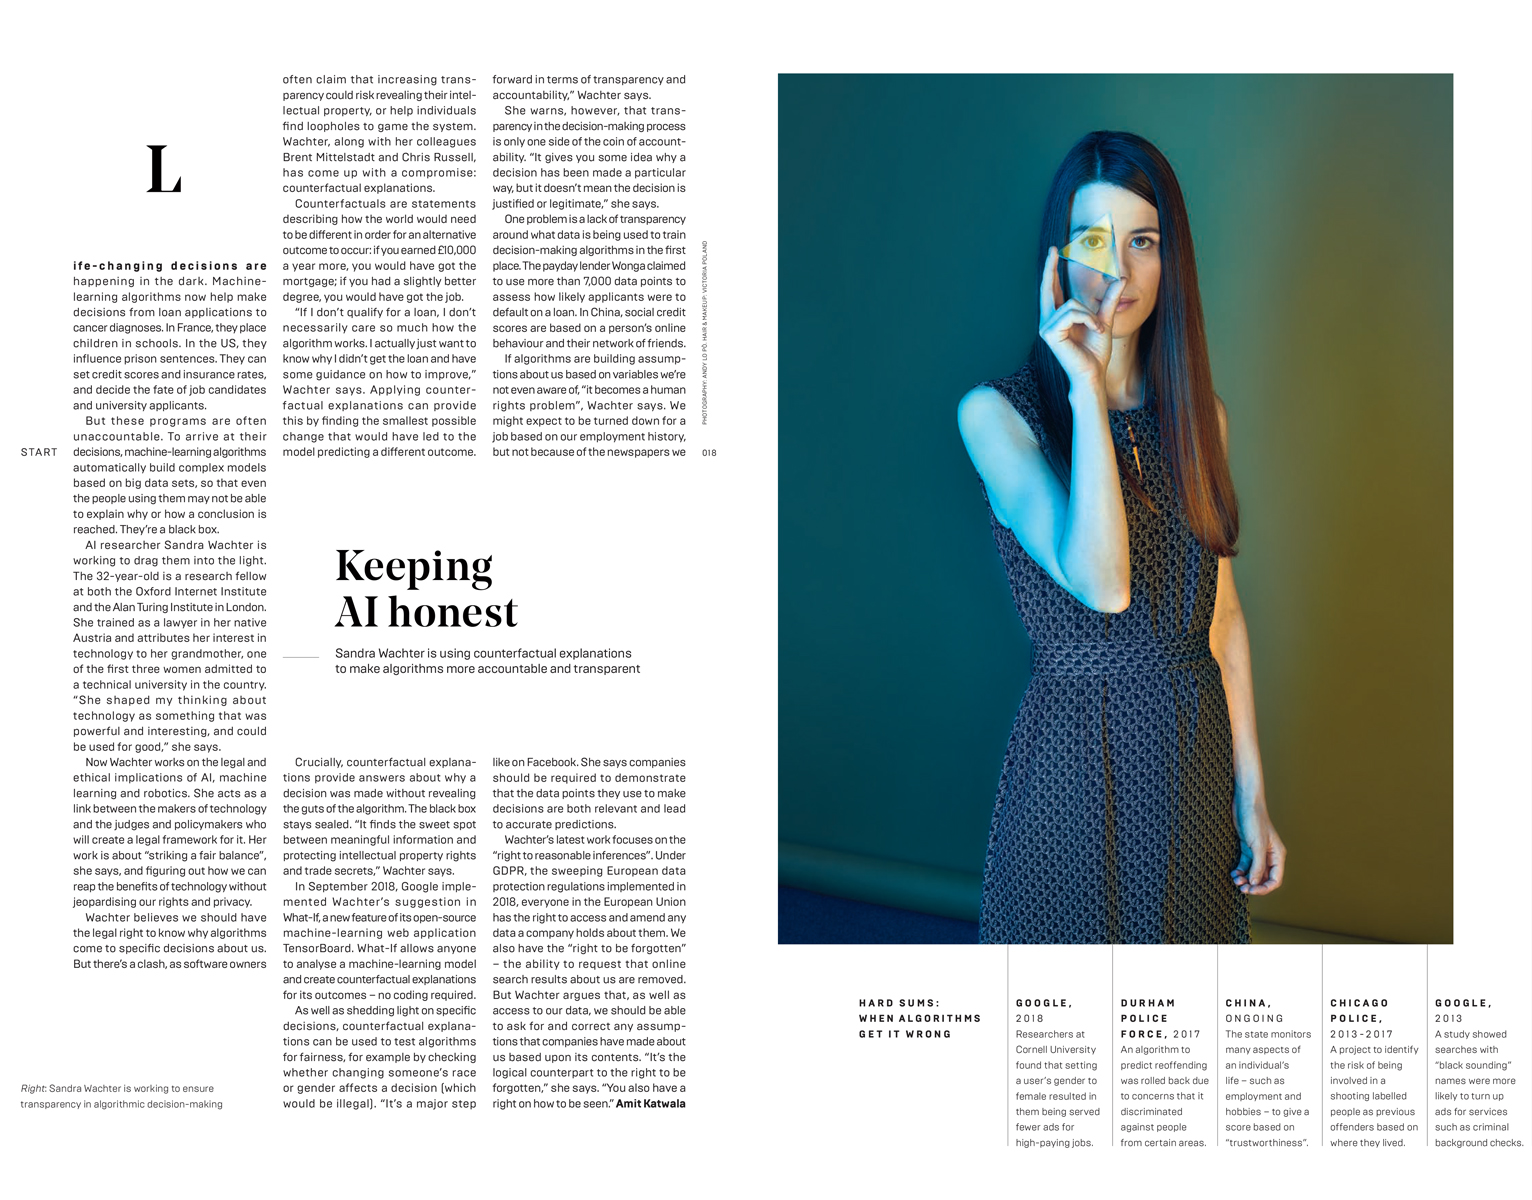 Sandra Wired tearsheet.jpg